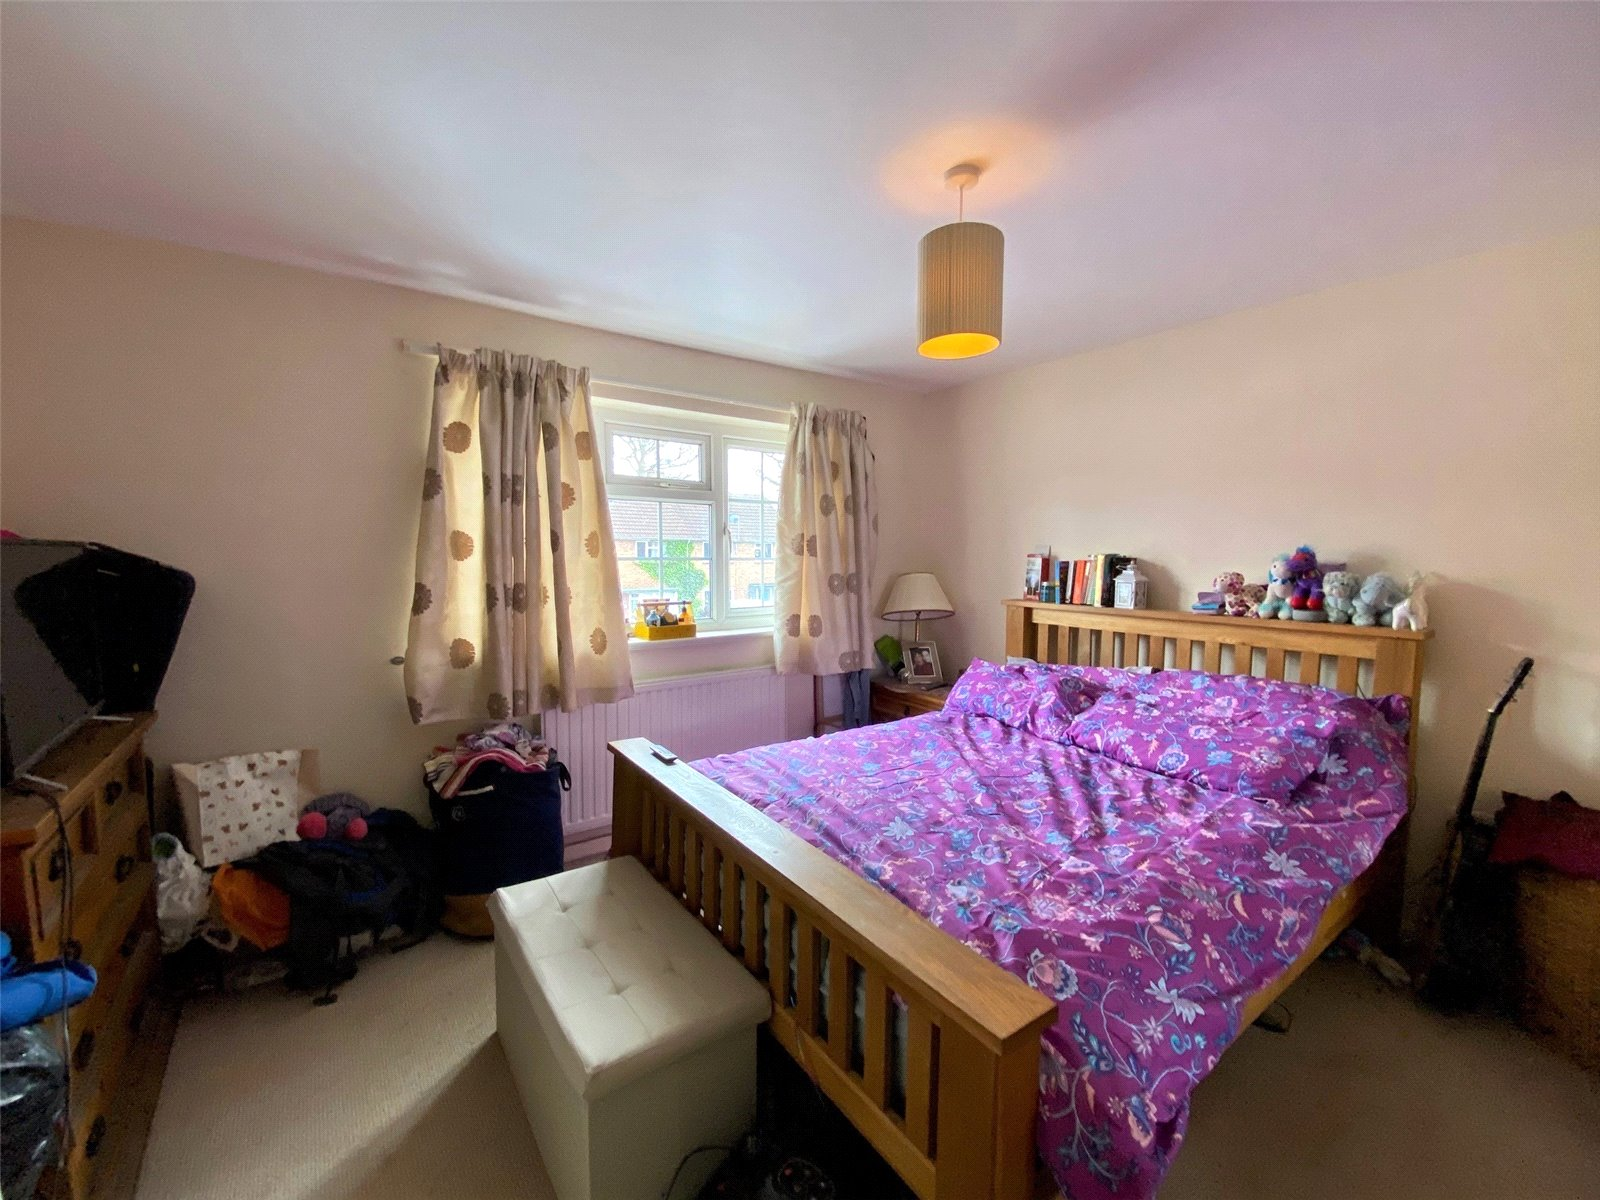 3 bed house to rent in Bricket Wood, AL2 3NB 4